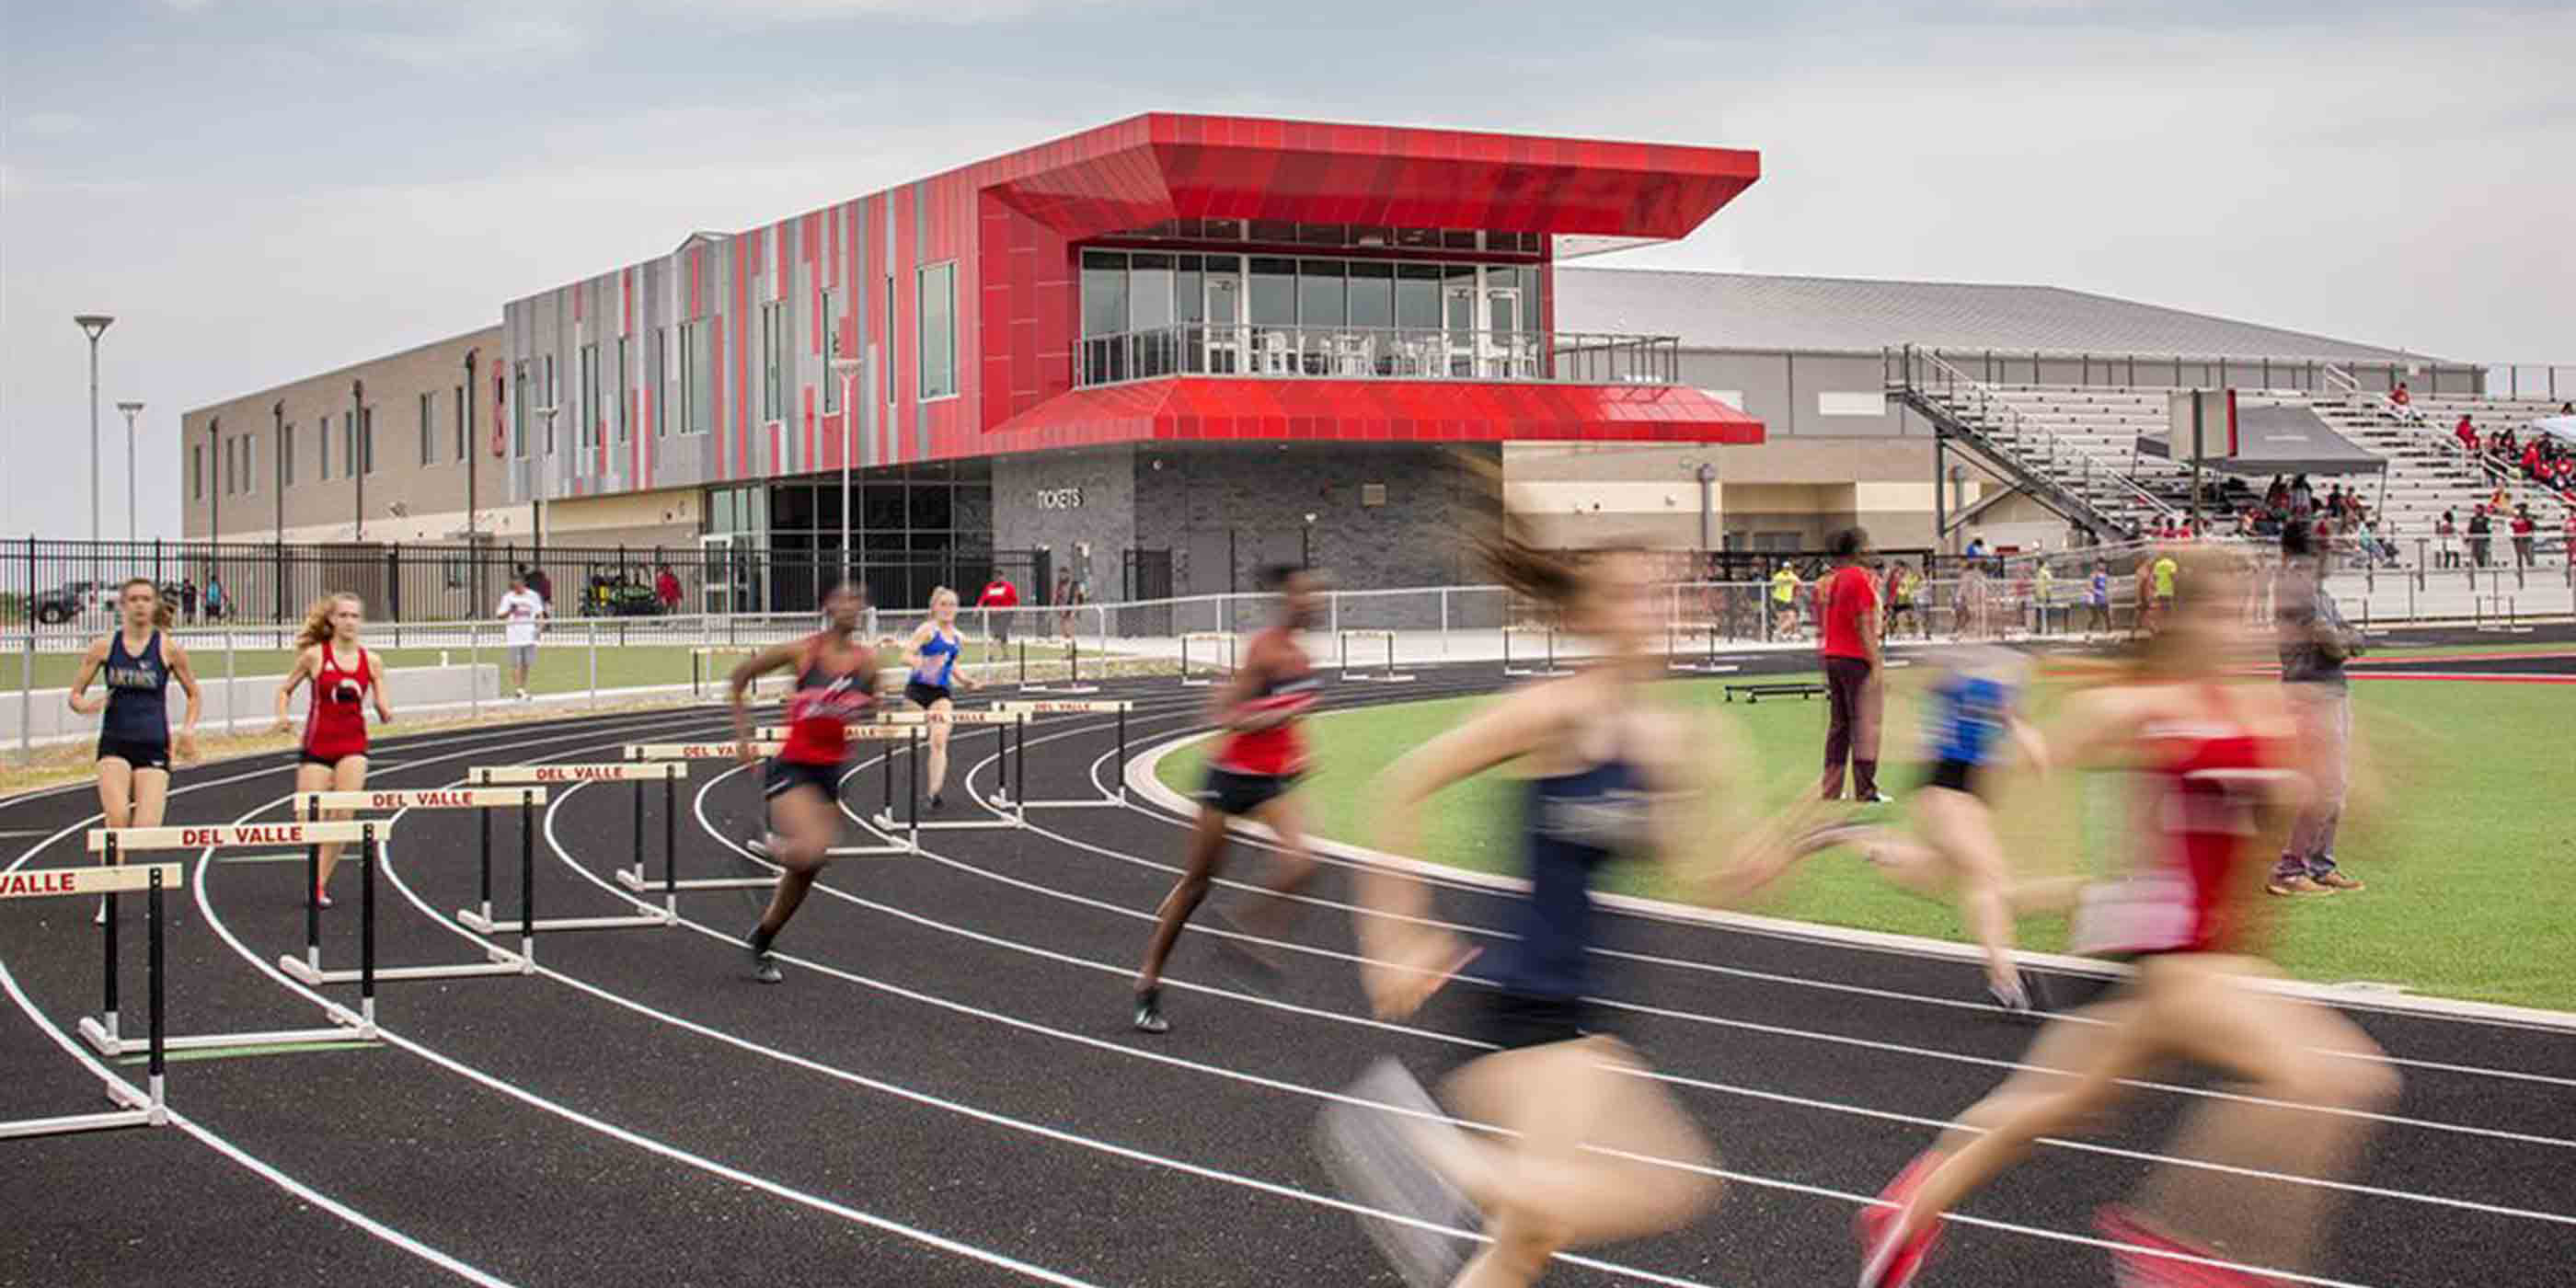 Planning & Designing for Athletics and Beyond